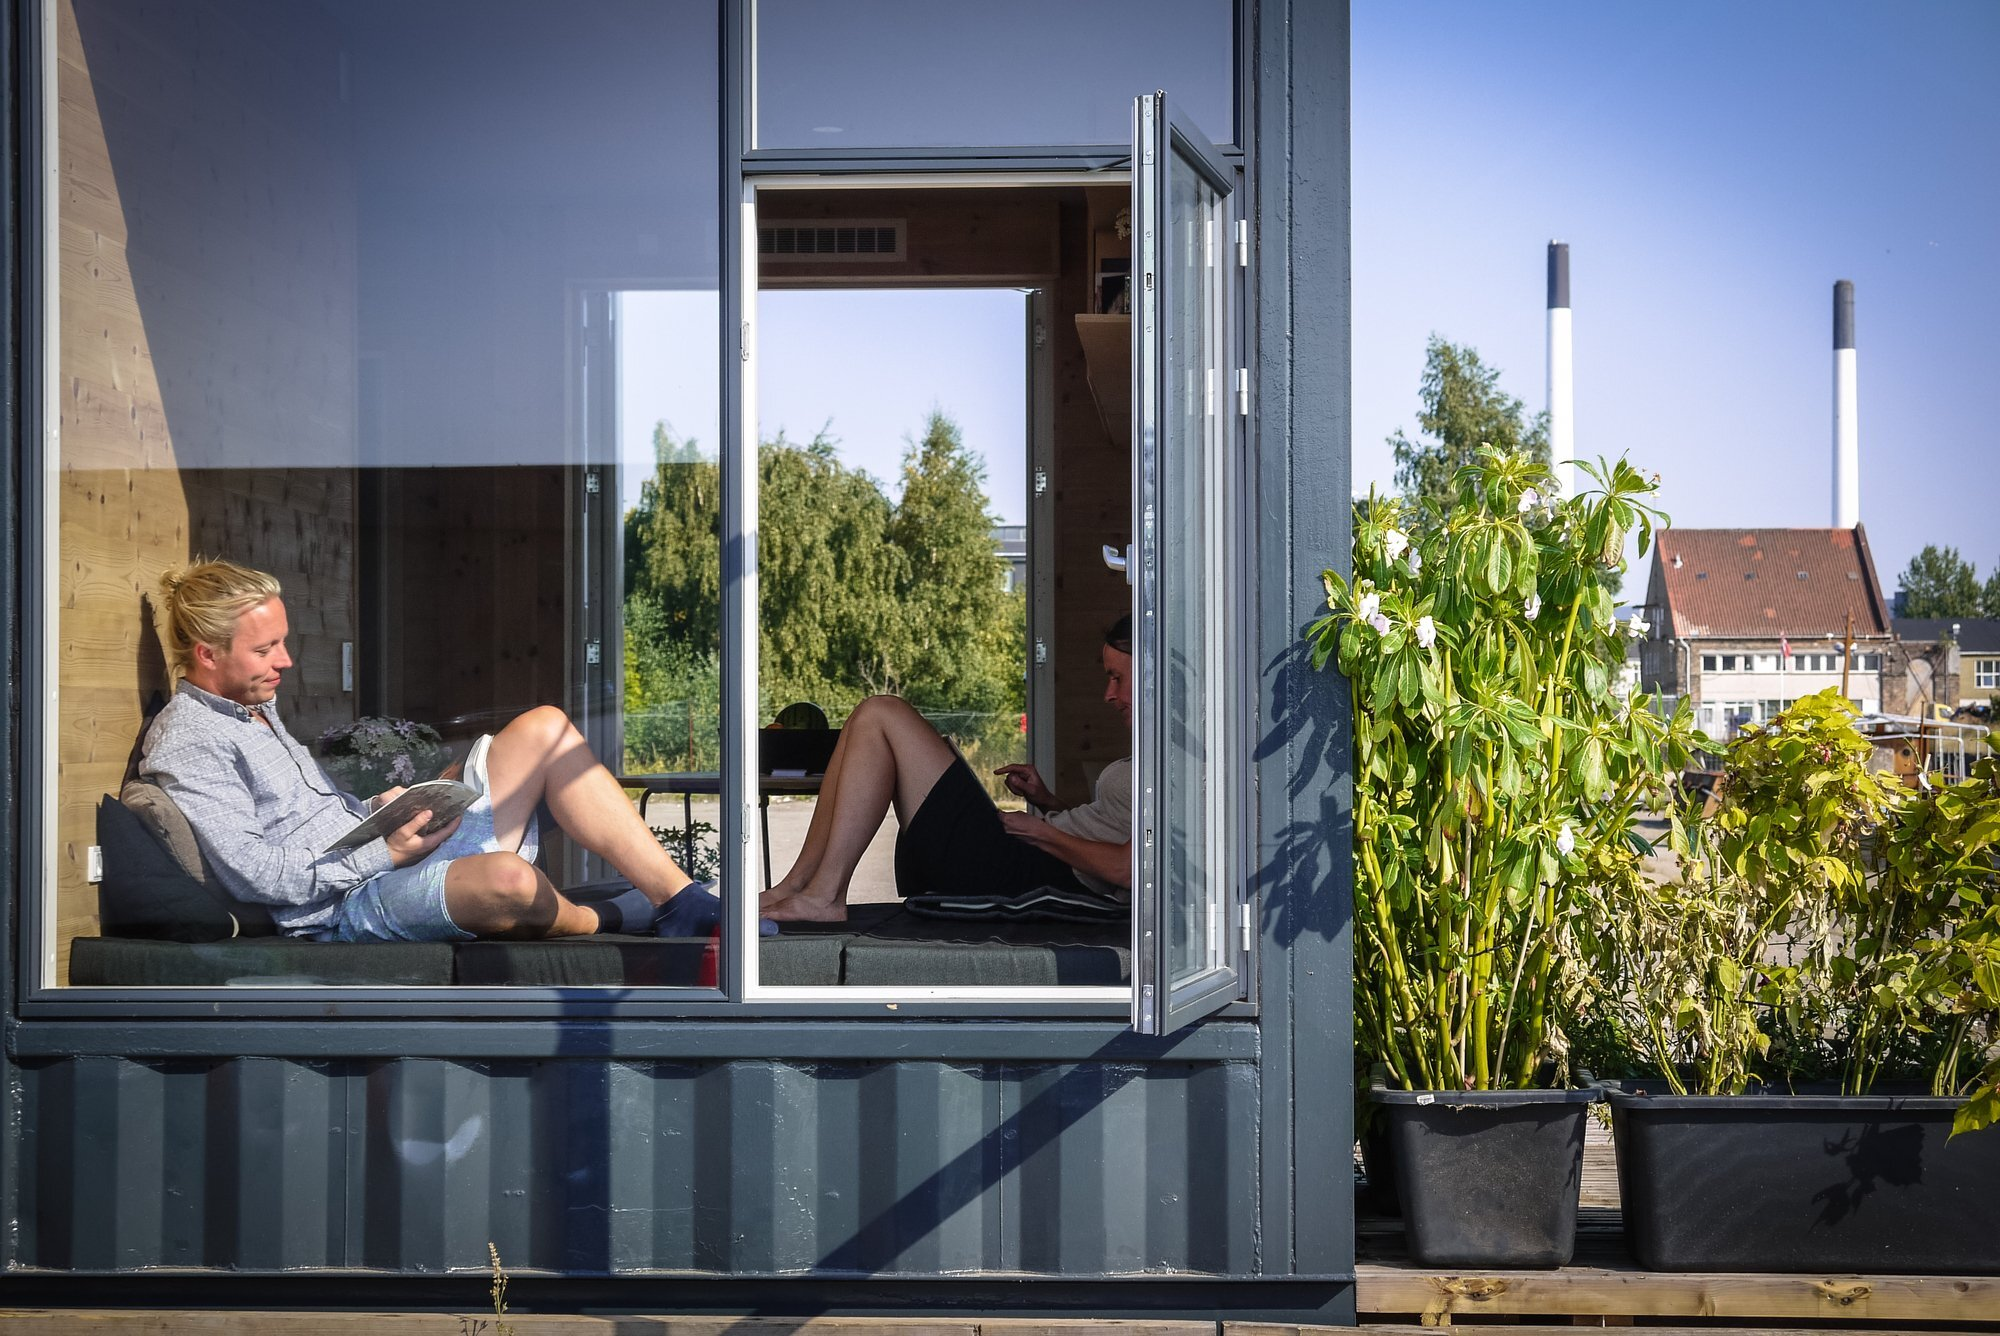 Container Haus Modern A Student Village Made Of Container Homes In Copenhagen By Cph